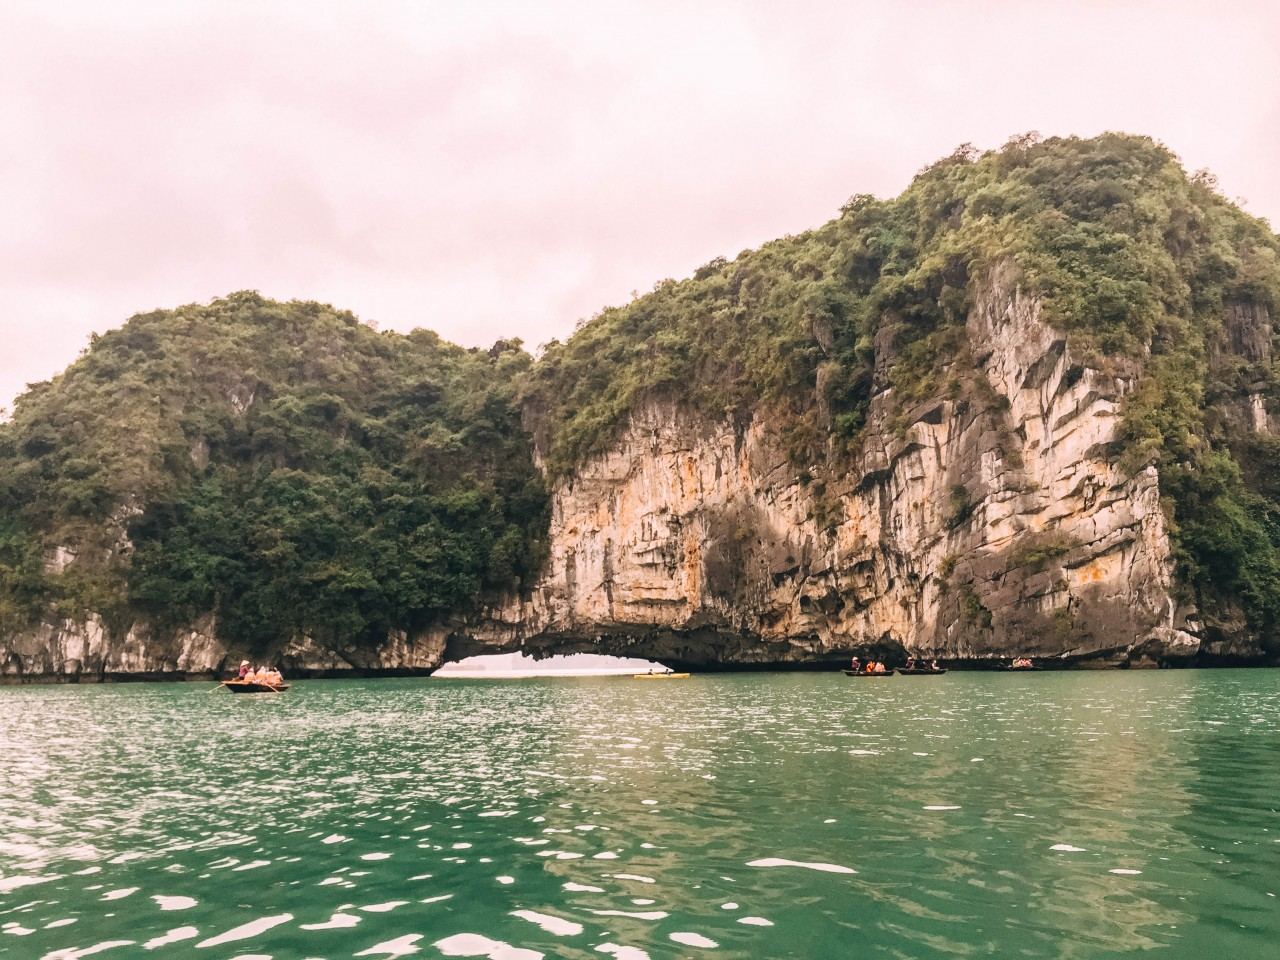 View of Bay's landscape in Halong Bay, Vietnam